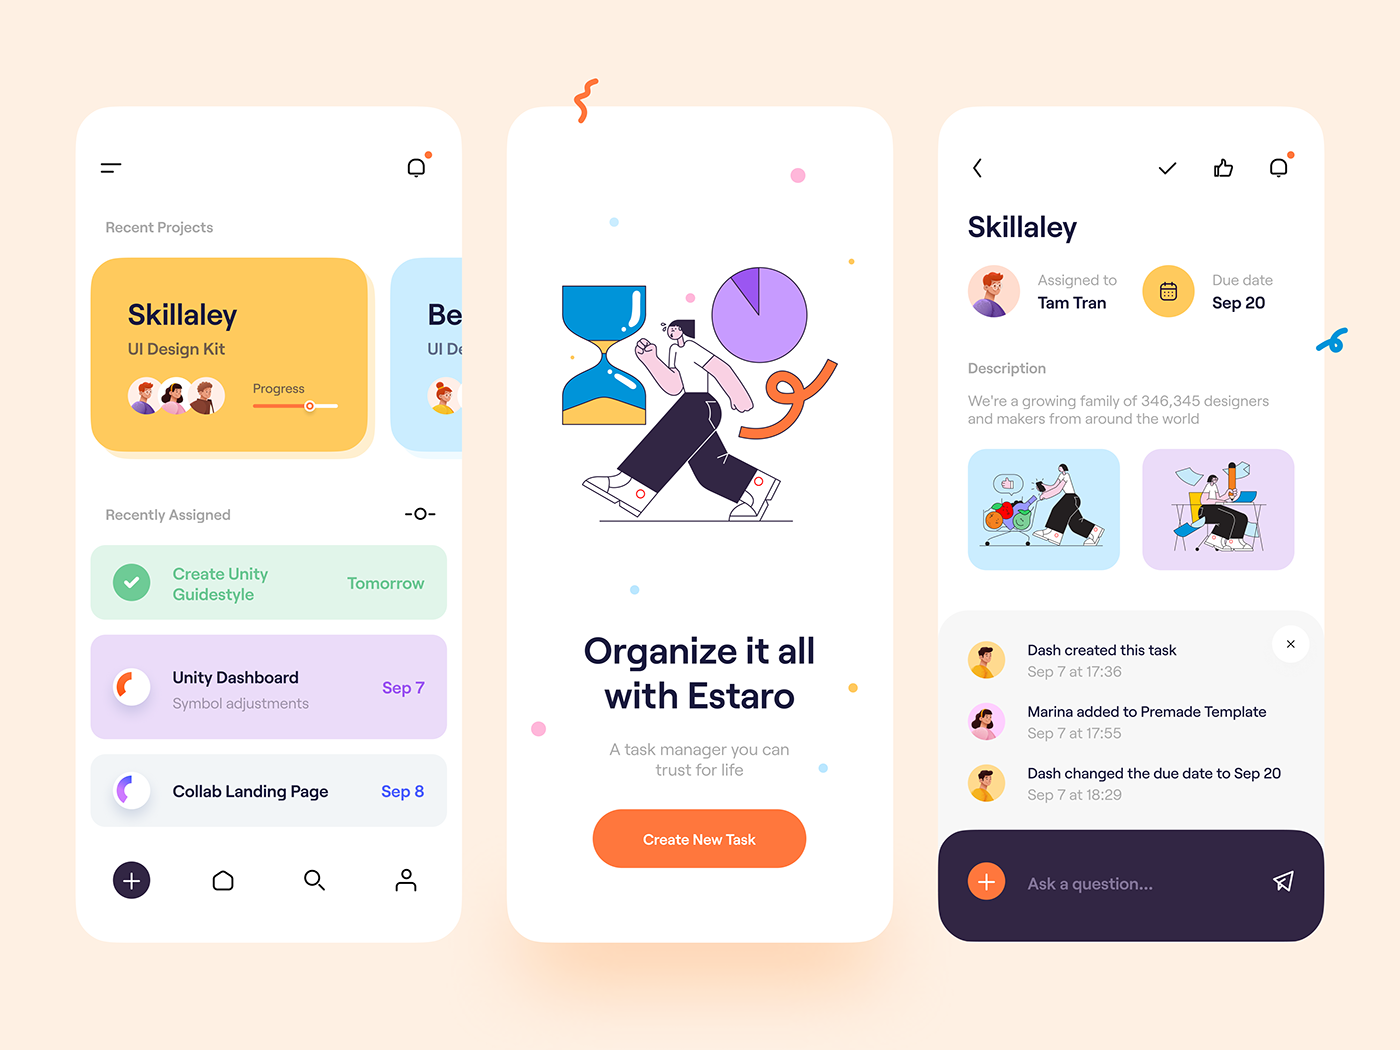 dribbble - tranmautritam - task management